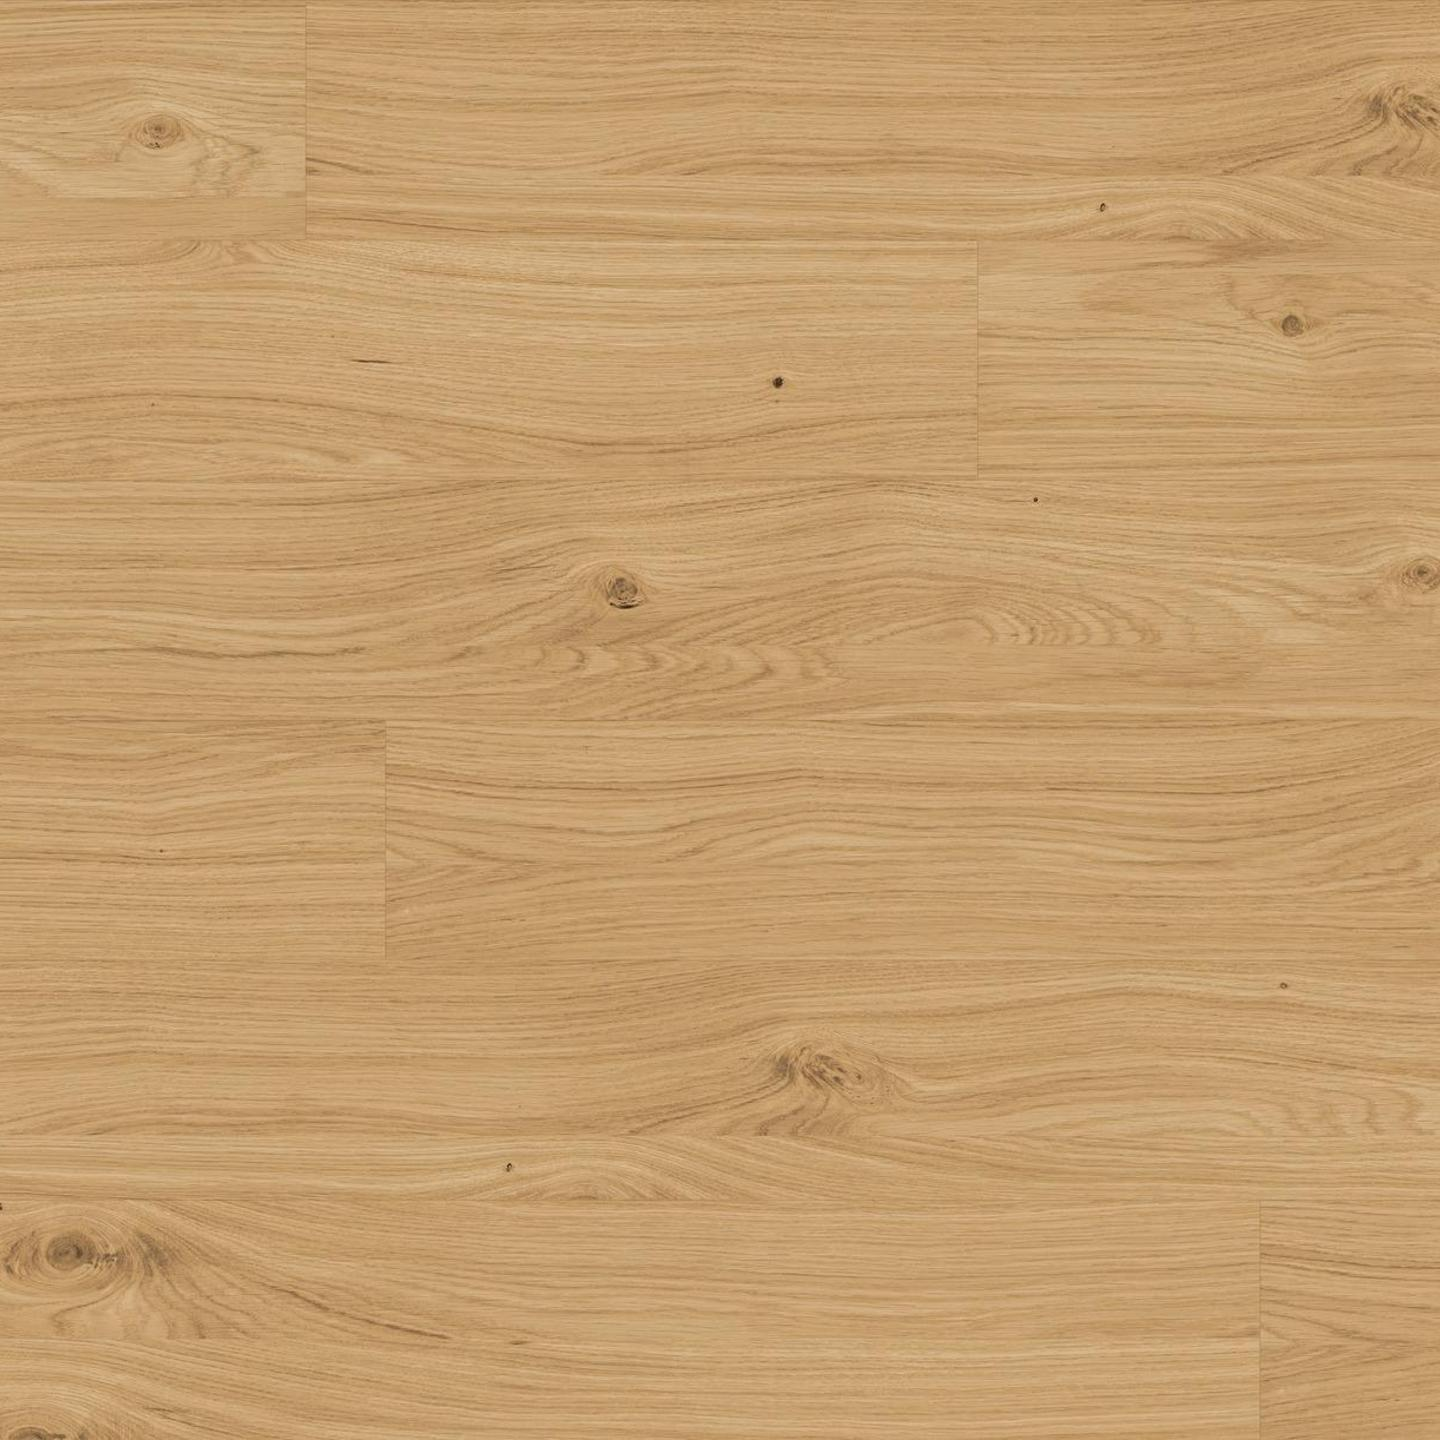 Wenge Oak Solid Wood Flooring ae0ab0 oak solid lm matt finish - floor | kaindl